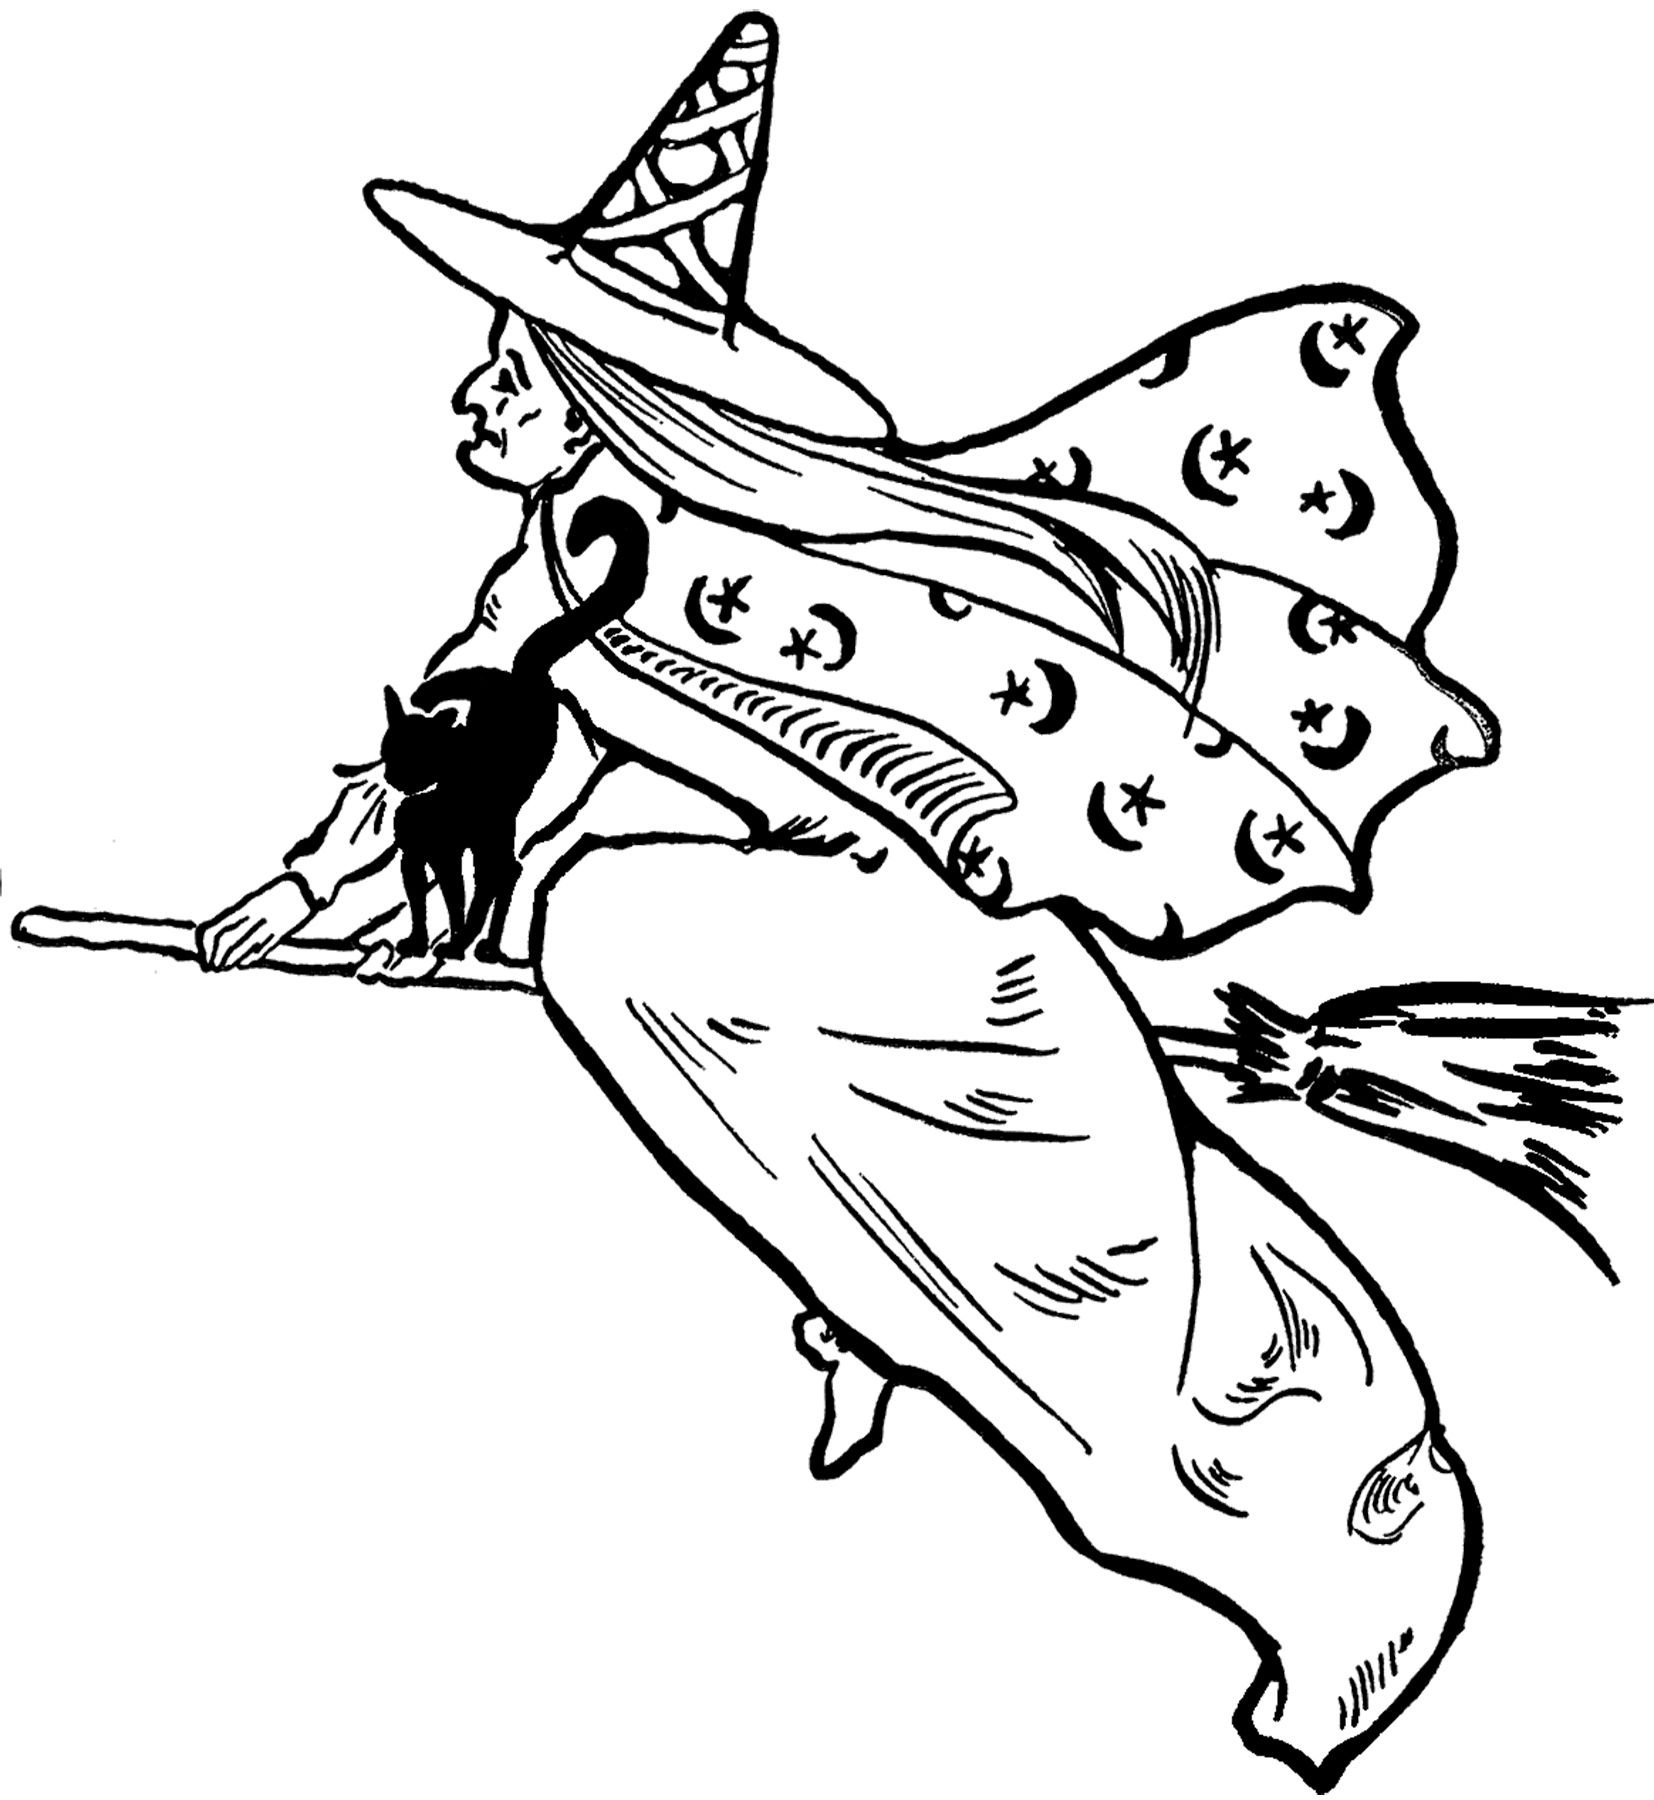 Witch graphics clipart graphic black and white library Free Flying Witch Clip Art!   Victorian Graphic Images ... graphic black and white library